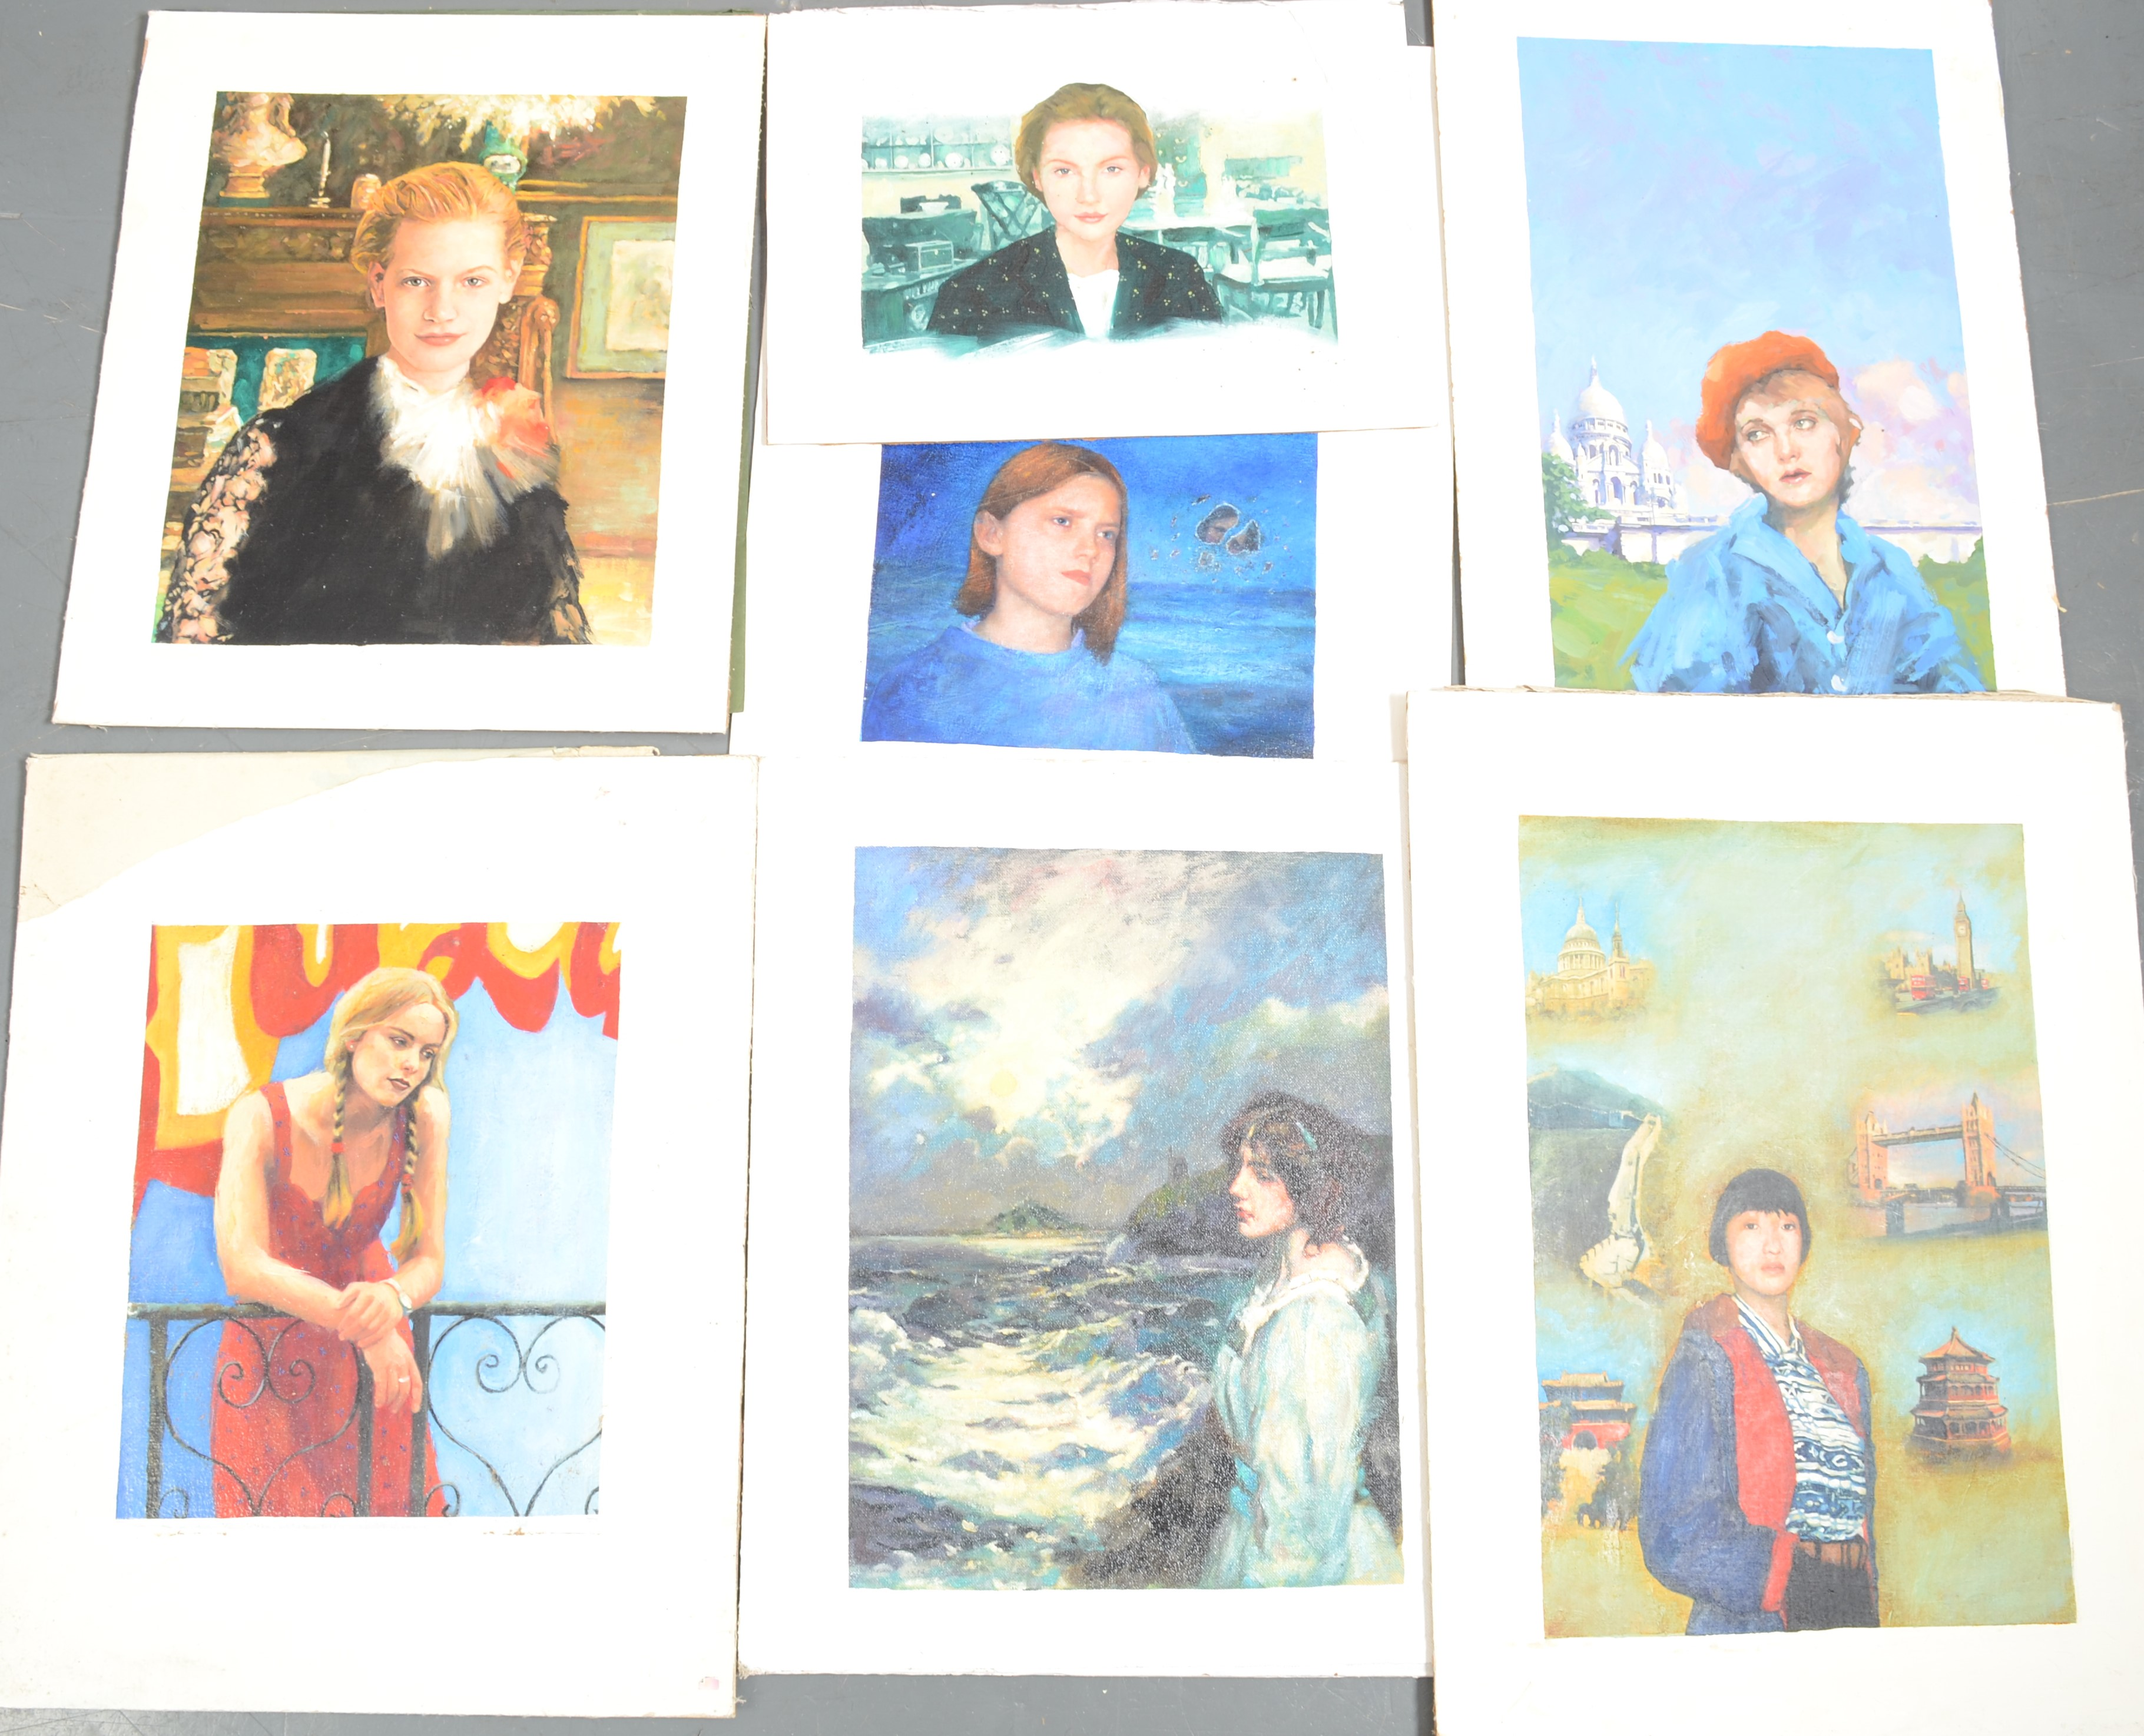 Lot 20 - Magazine Artwork Various themes Condition report: Lot 20 - These are all oils or